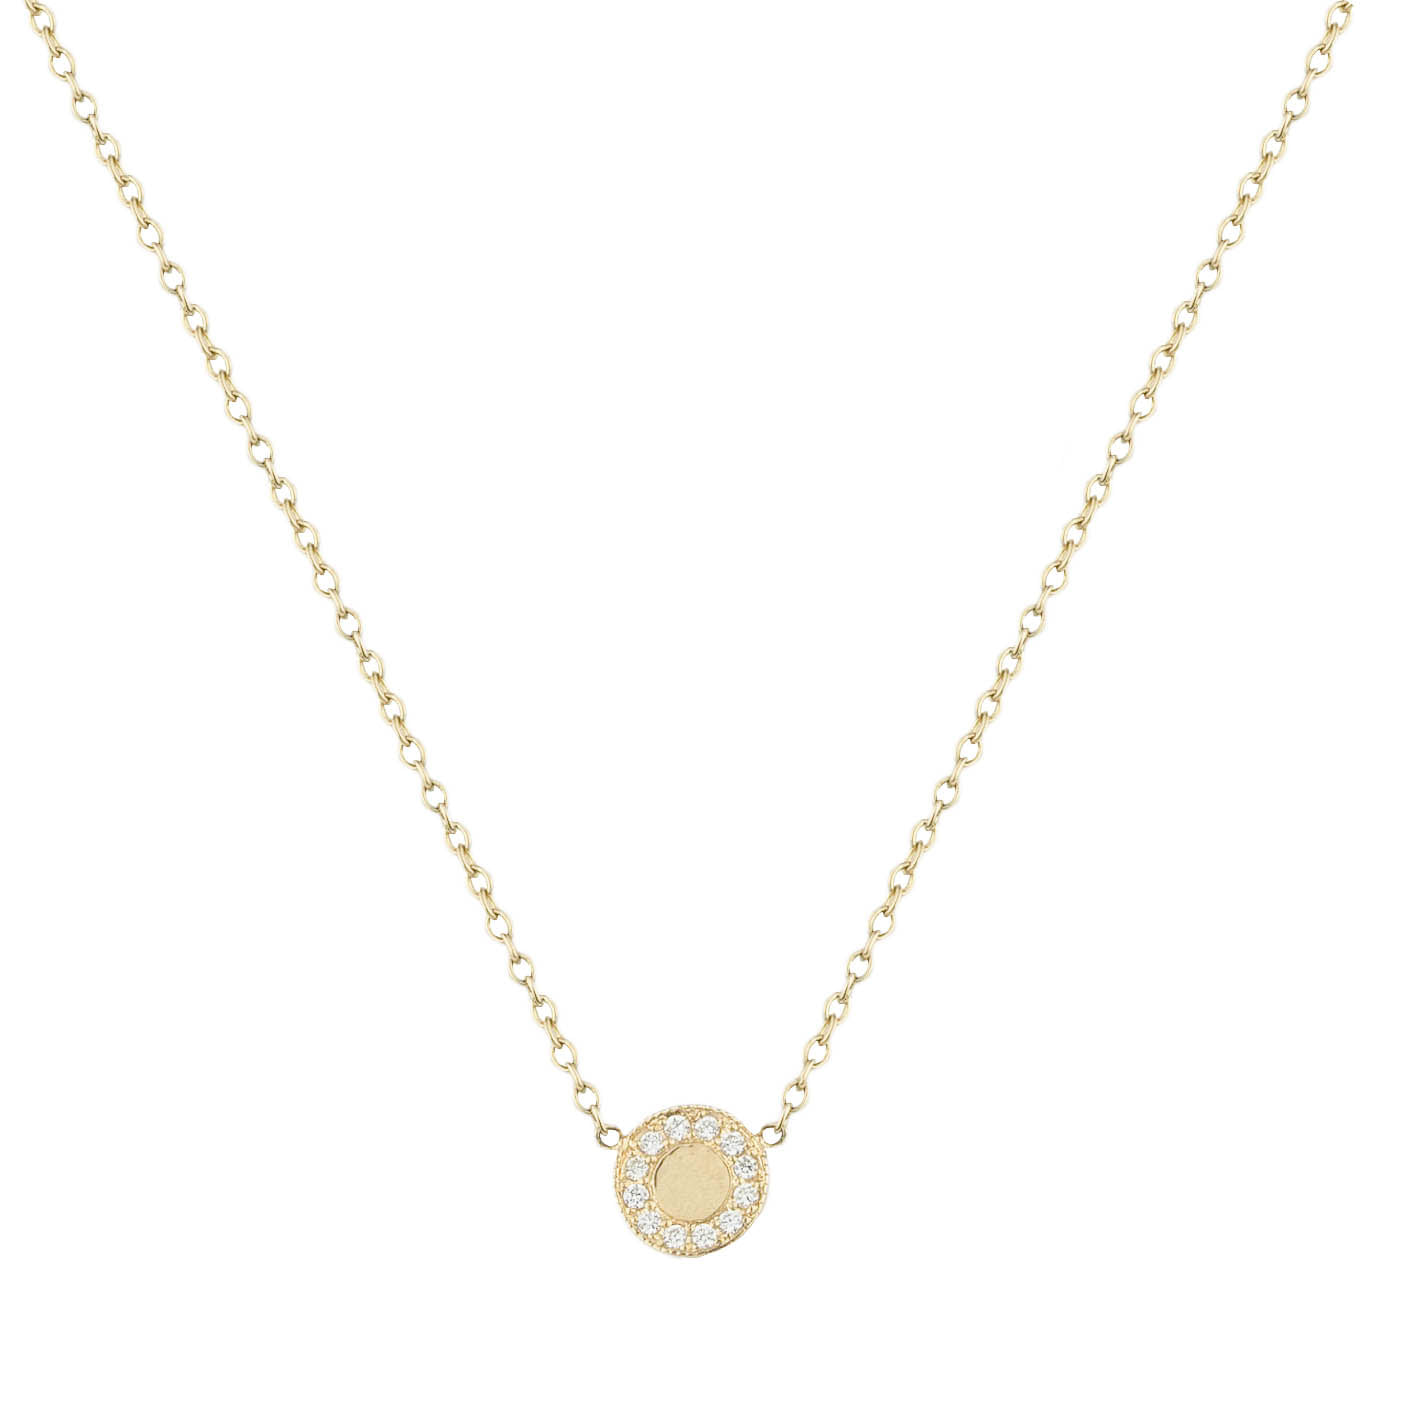 Sunrise Pave Diamond Necklace